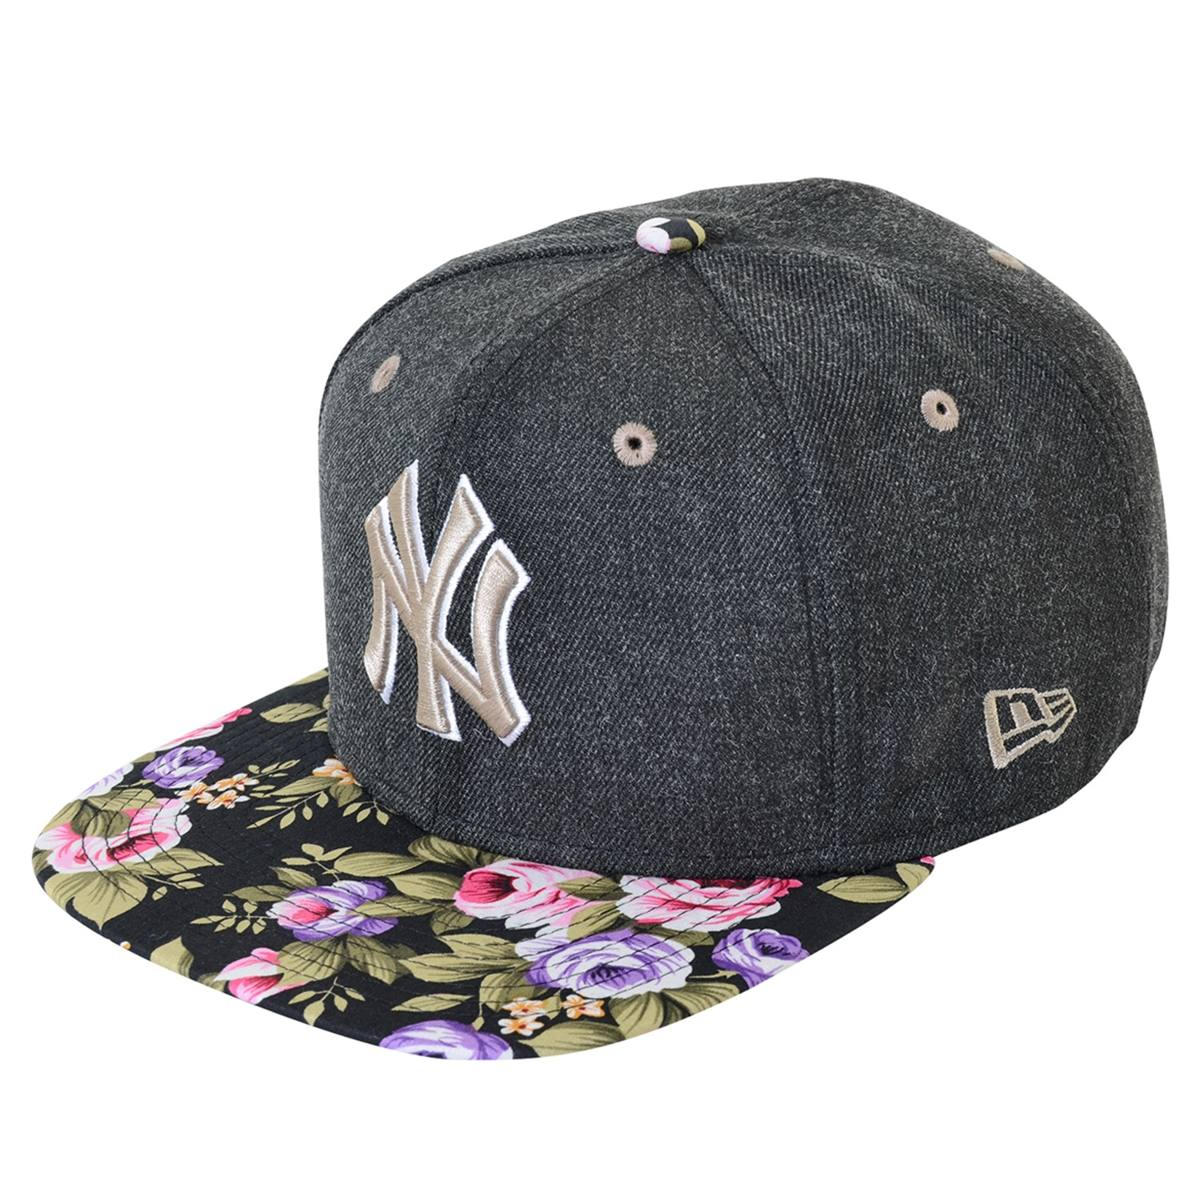 b99b96cba boné feminino new era 950 bloom vize ny yankees. Carregando zoom.